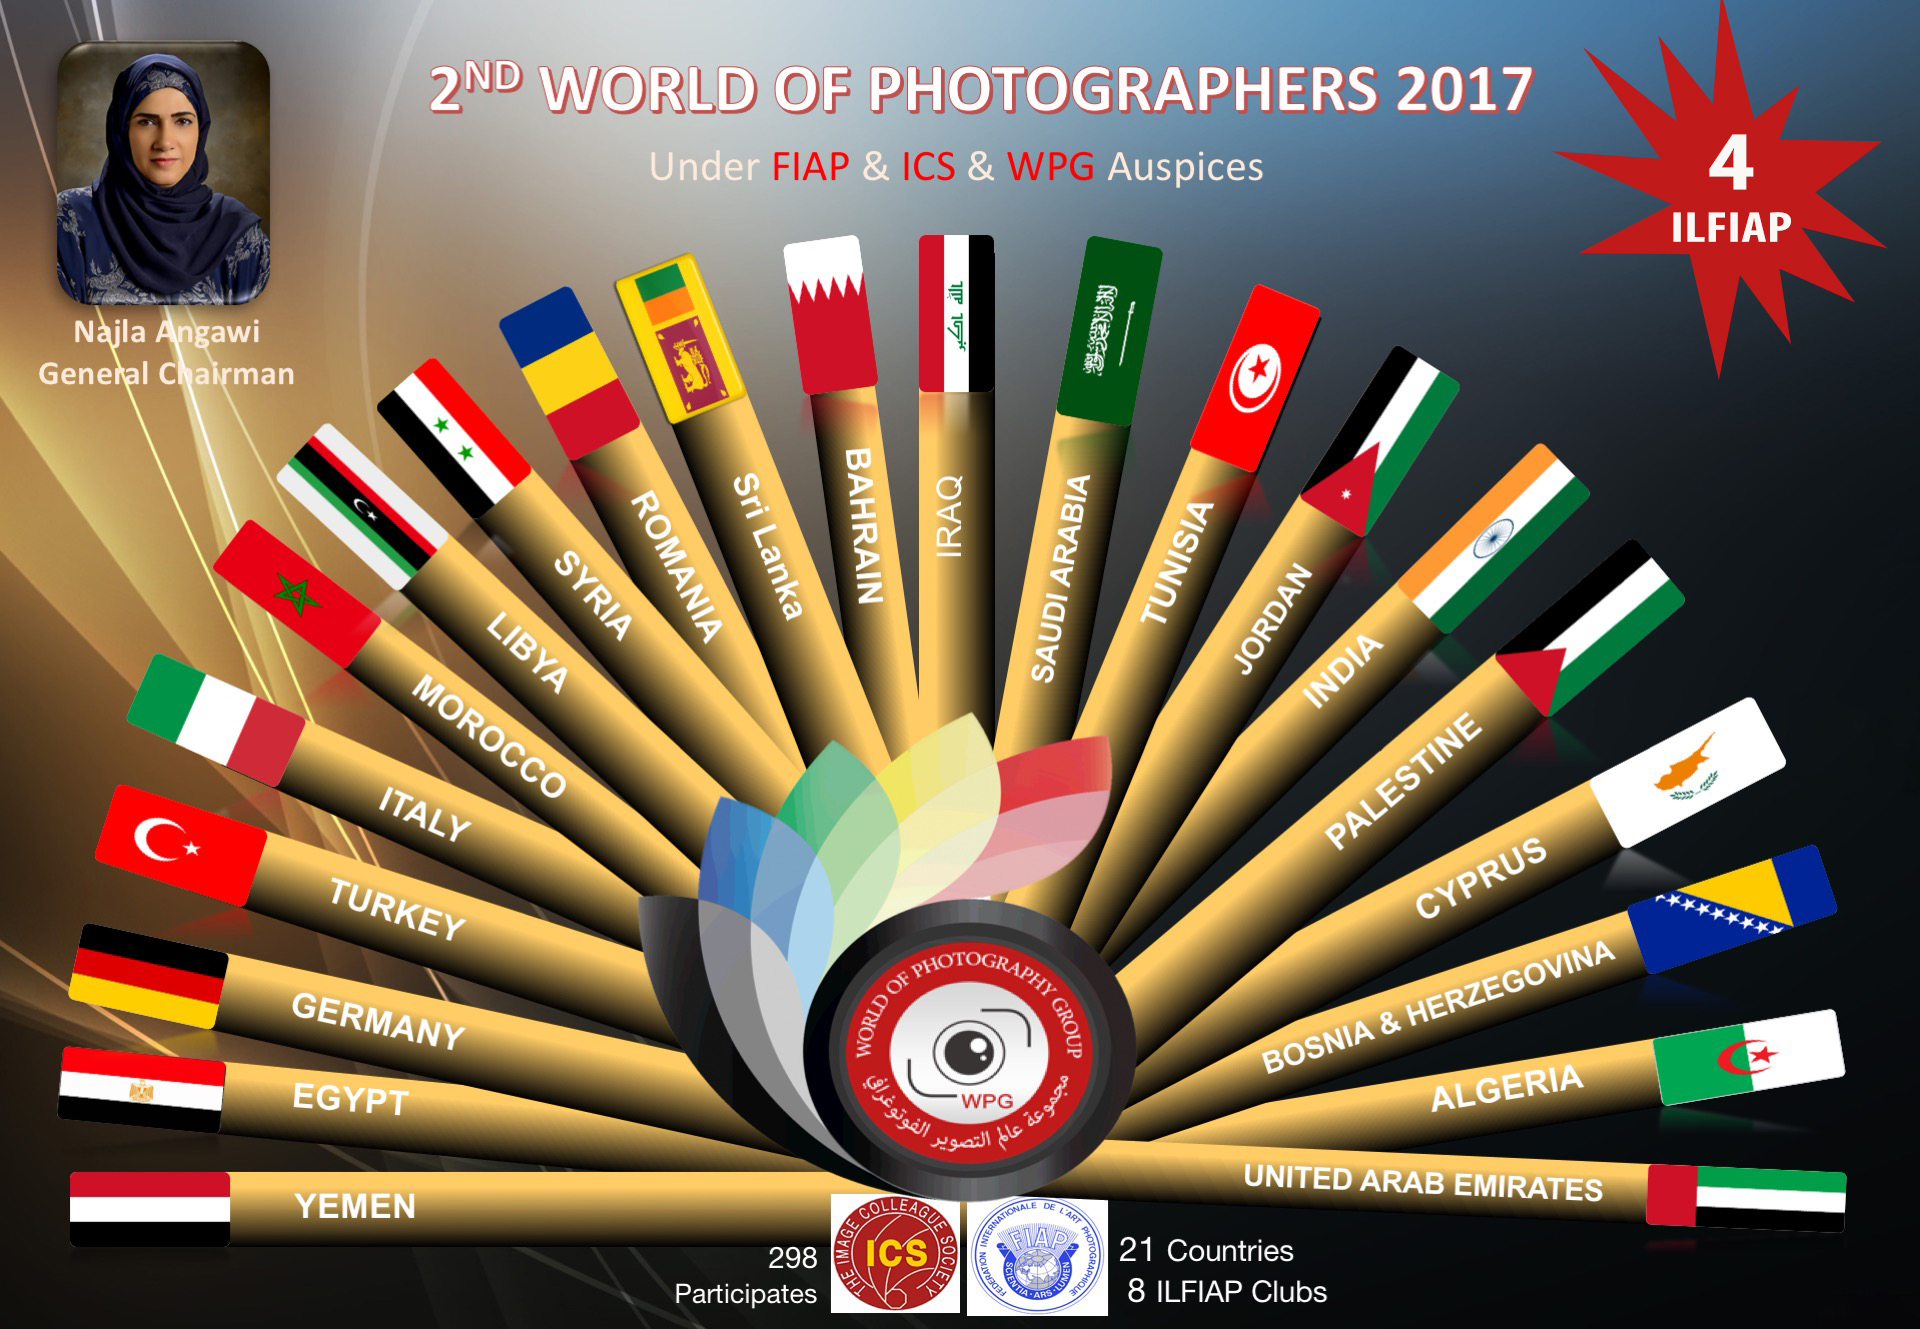 2ND WORLD OF PHOTOGRAPHERS 2017